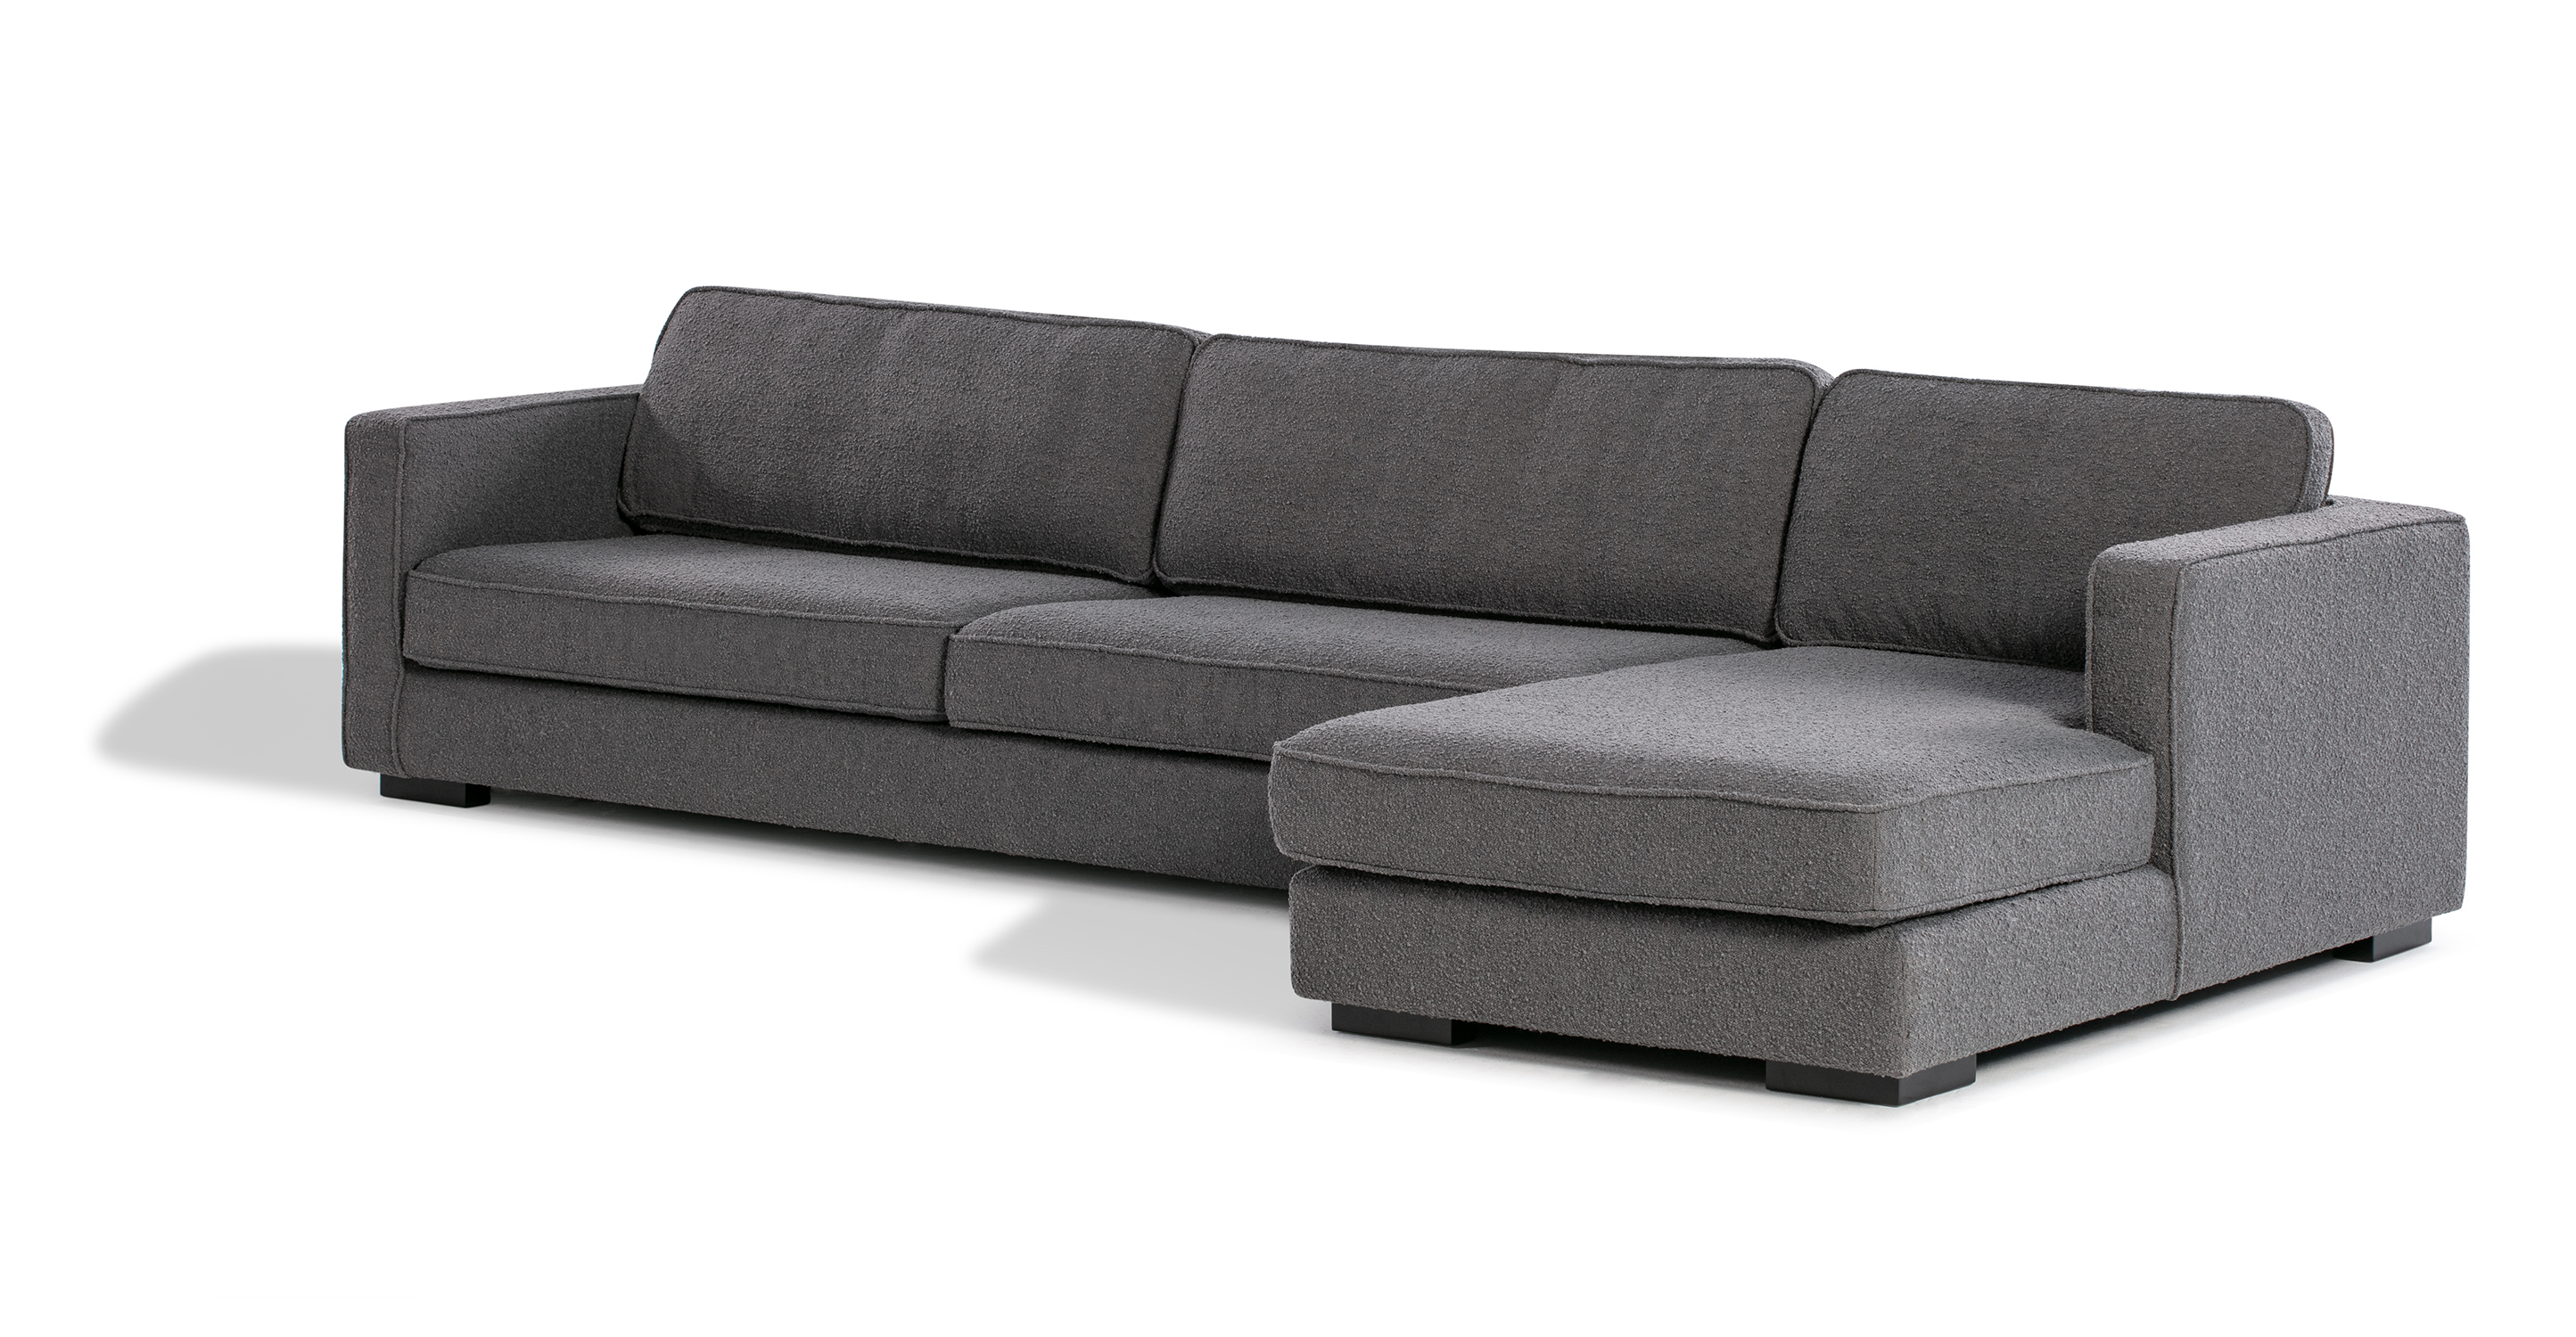 "Architect 133"" Fabric Sofa Sectional Right, Gris Boucle"